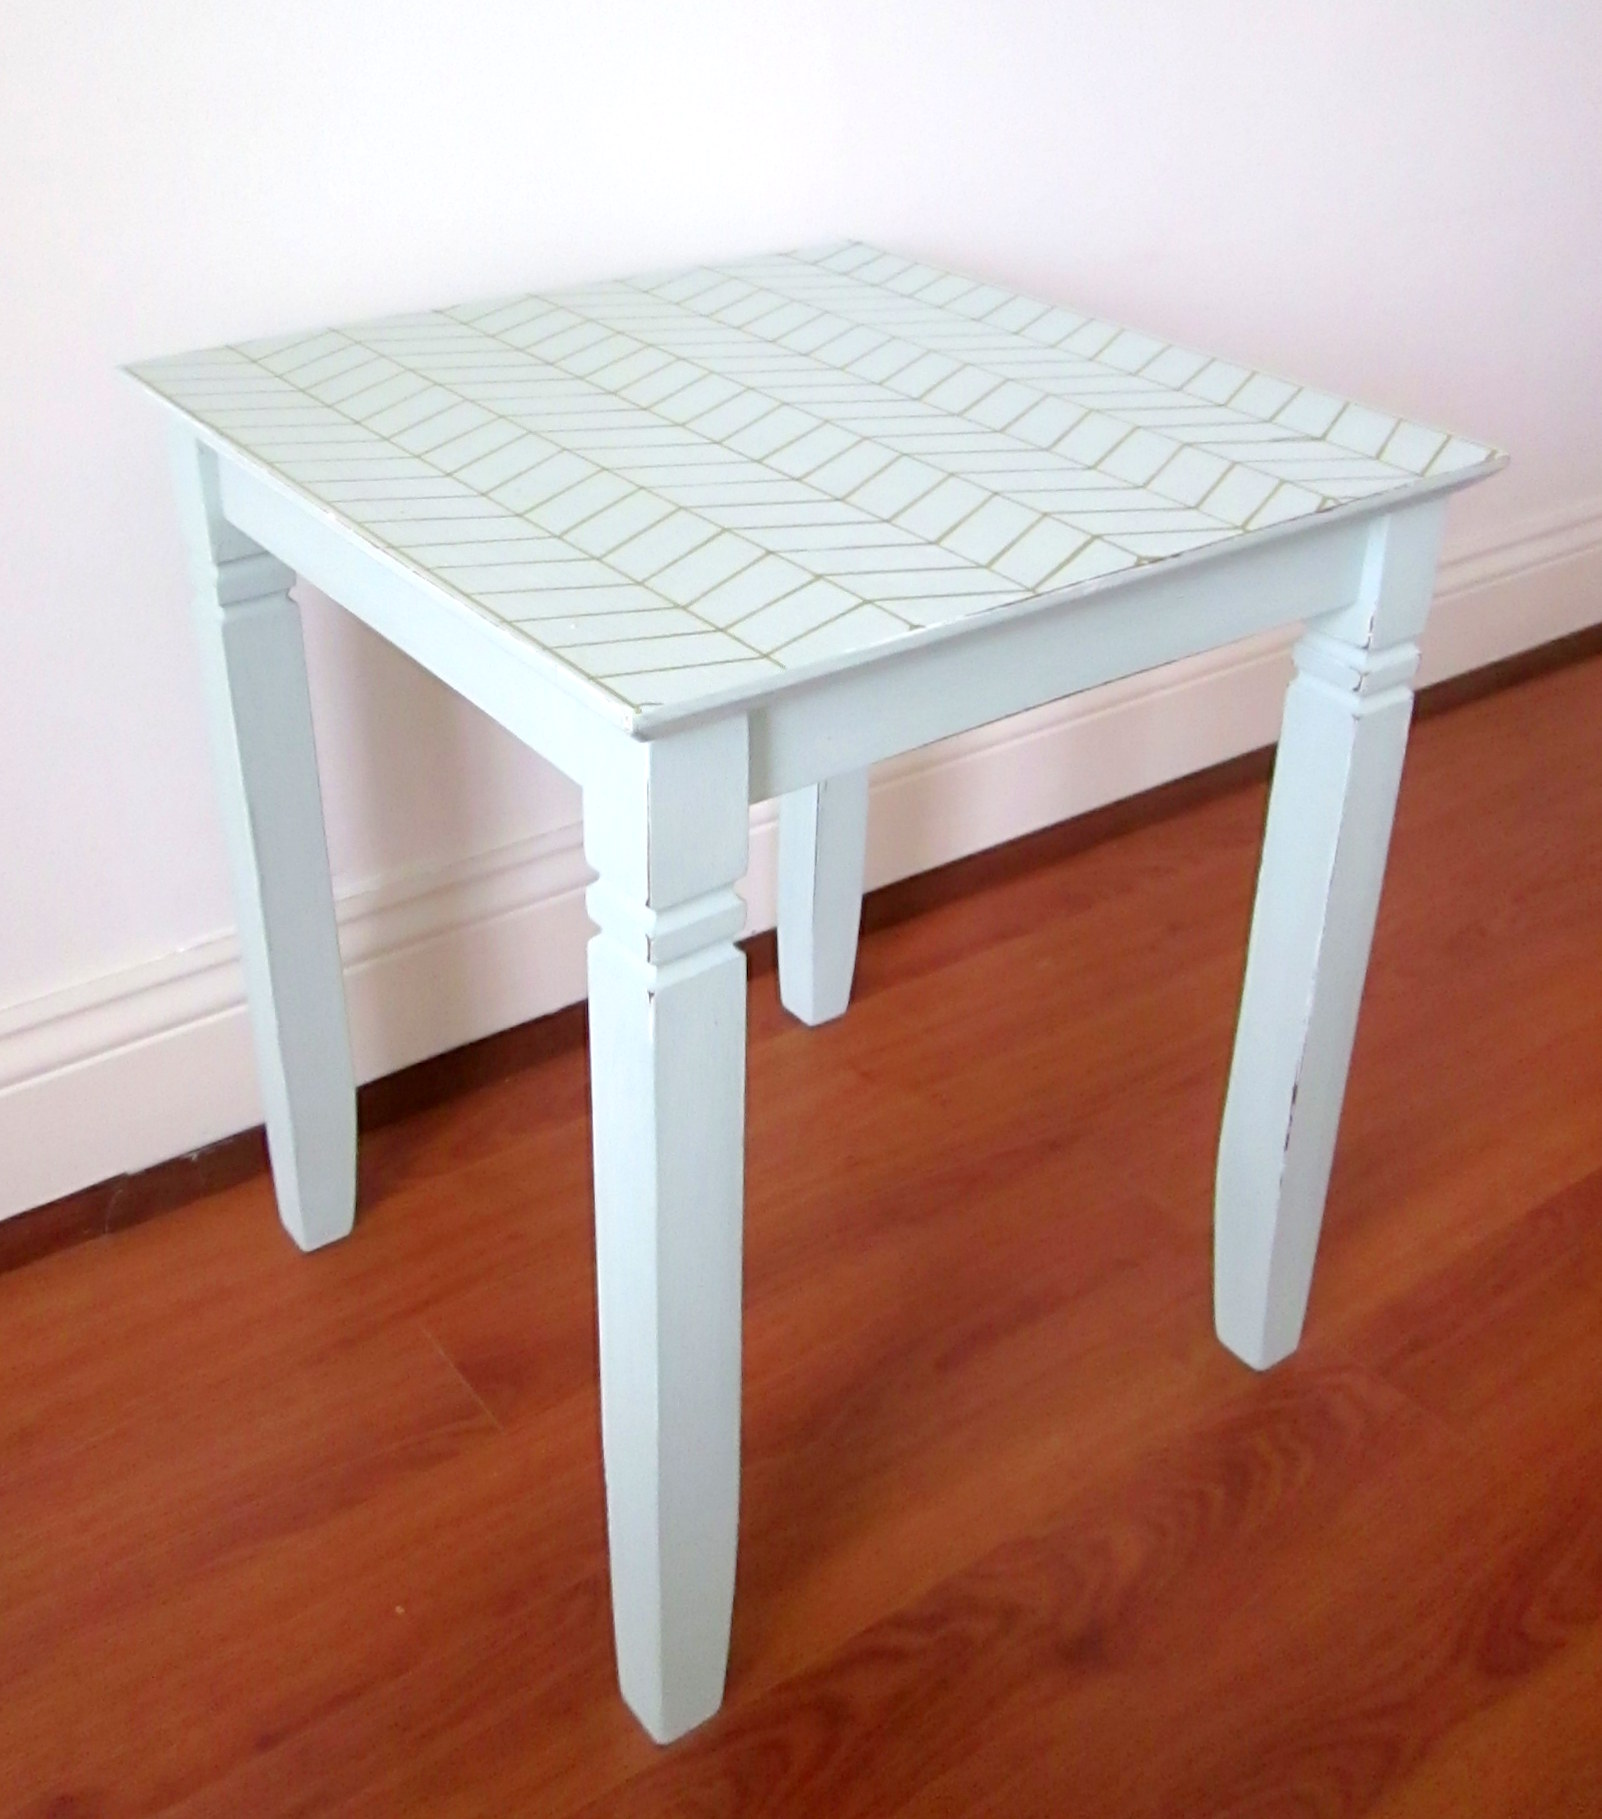 herringbone table6.jpg